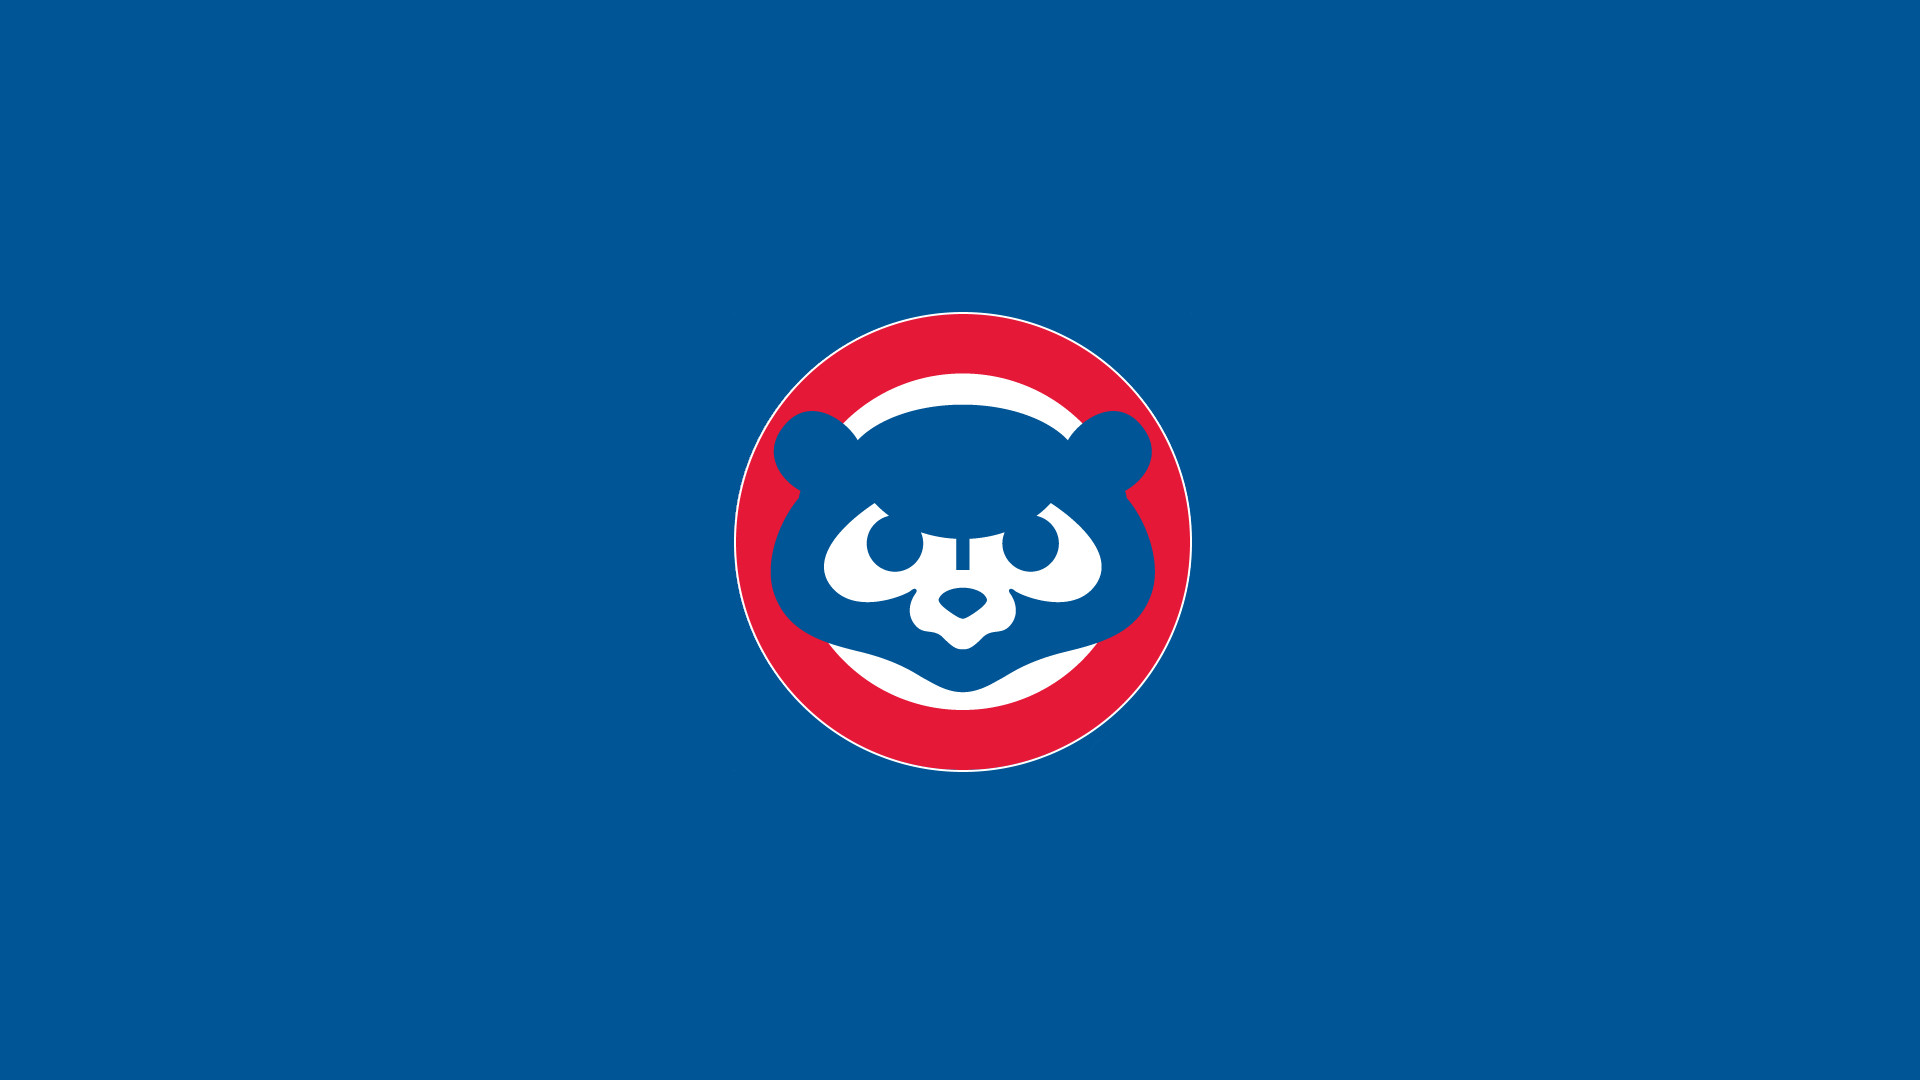 1920x1080 Best 20+ Cubs wallpaper ideas on Pinterest | Chicago cubs wallpaper, Did  the cubs win and Chicago cubs mlb